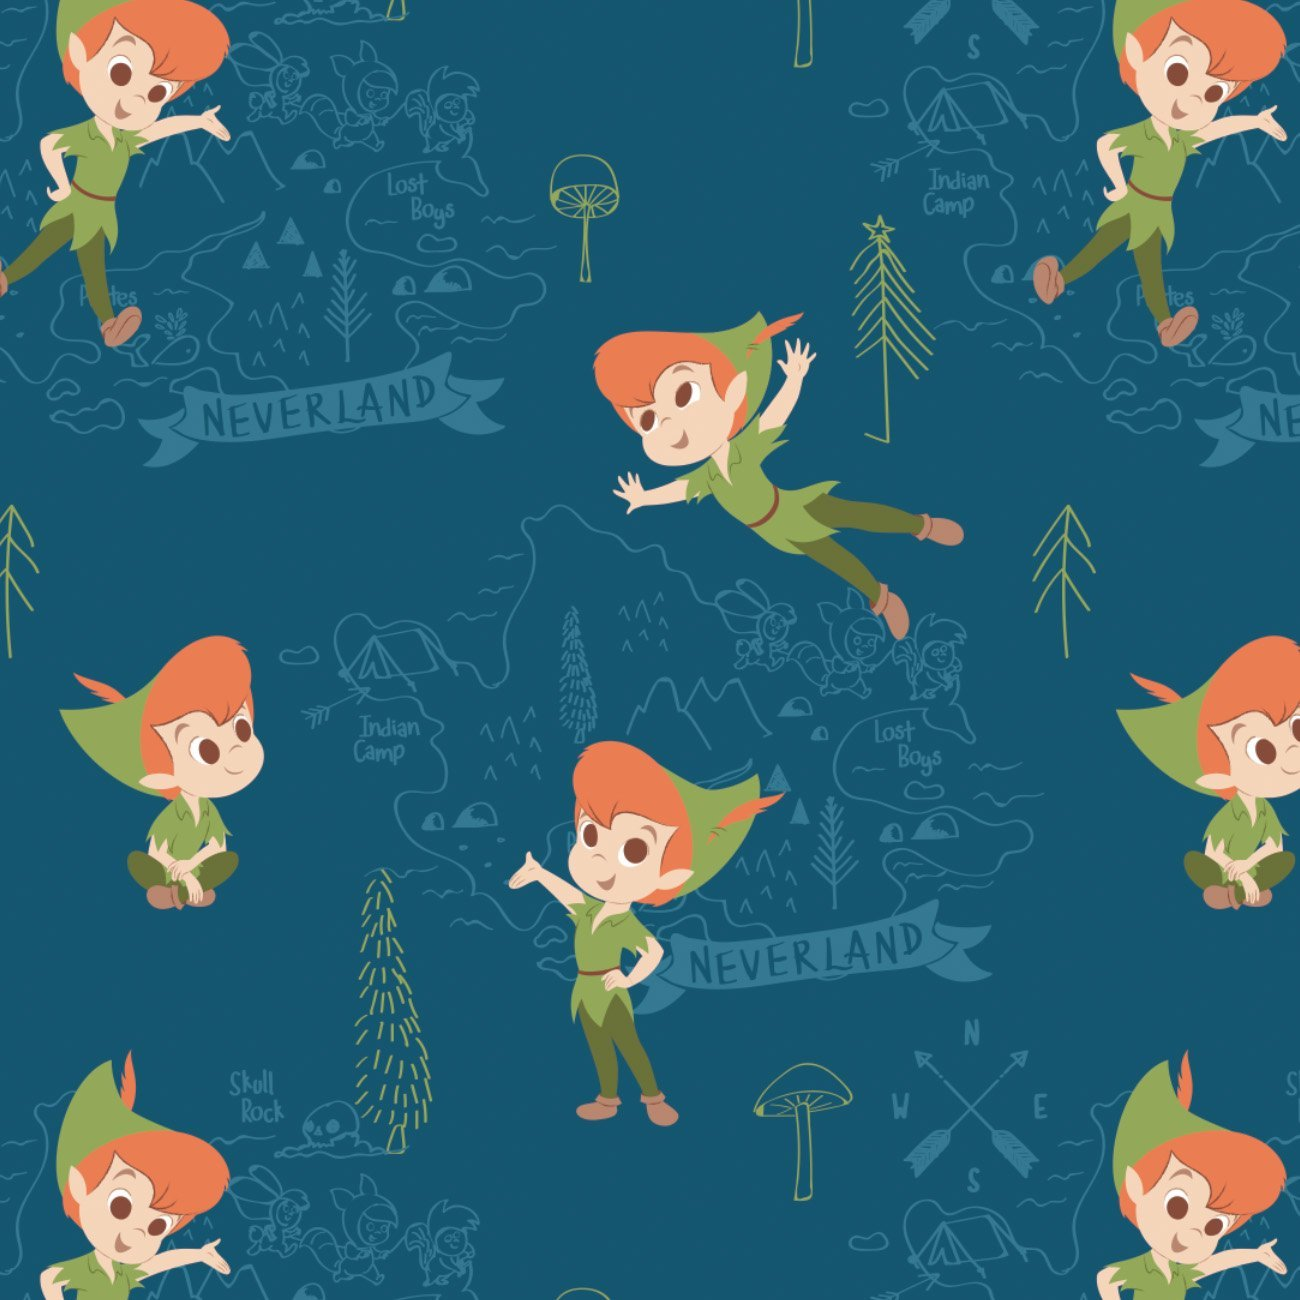 Peter Pan And Tinker Bell Collection - Neverland Adventures - Printed Flannel by Disney